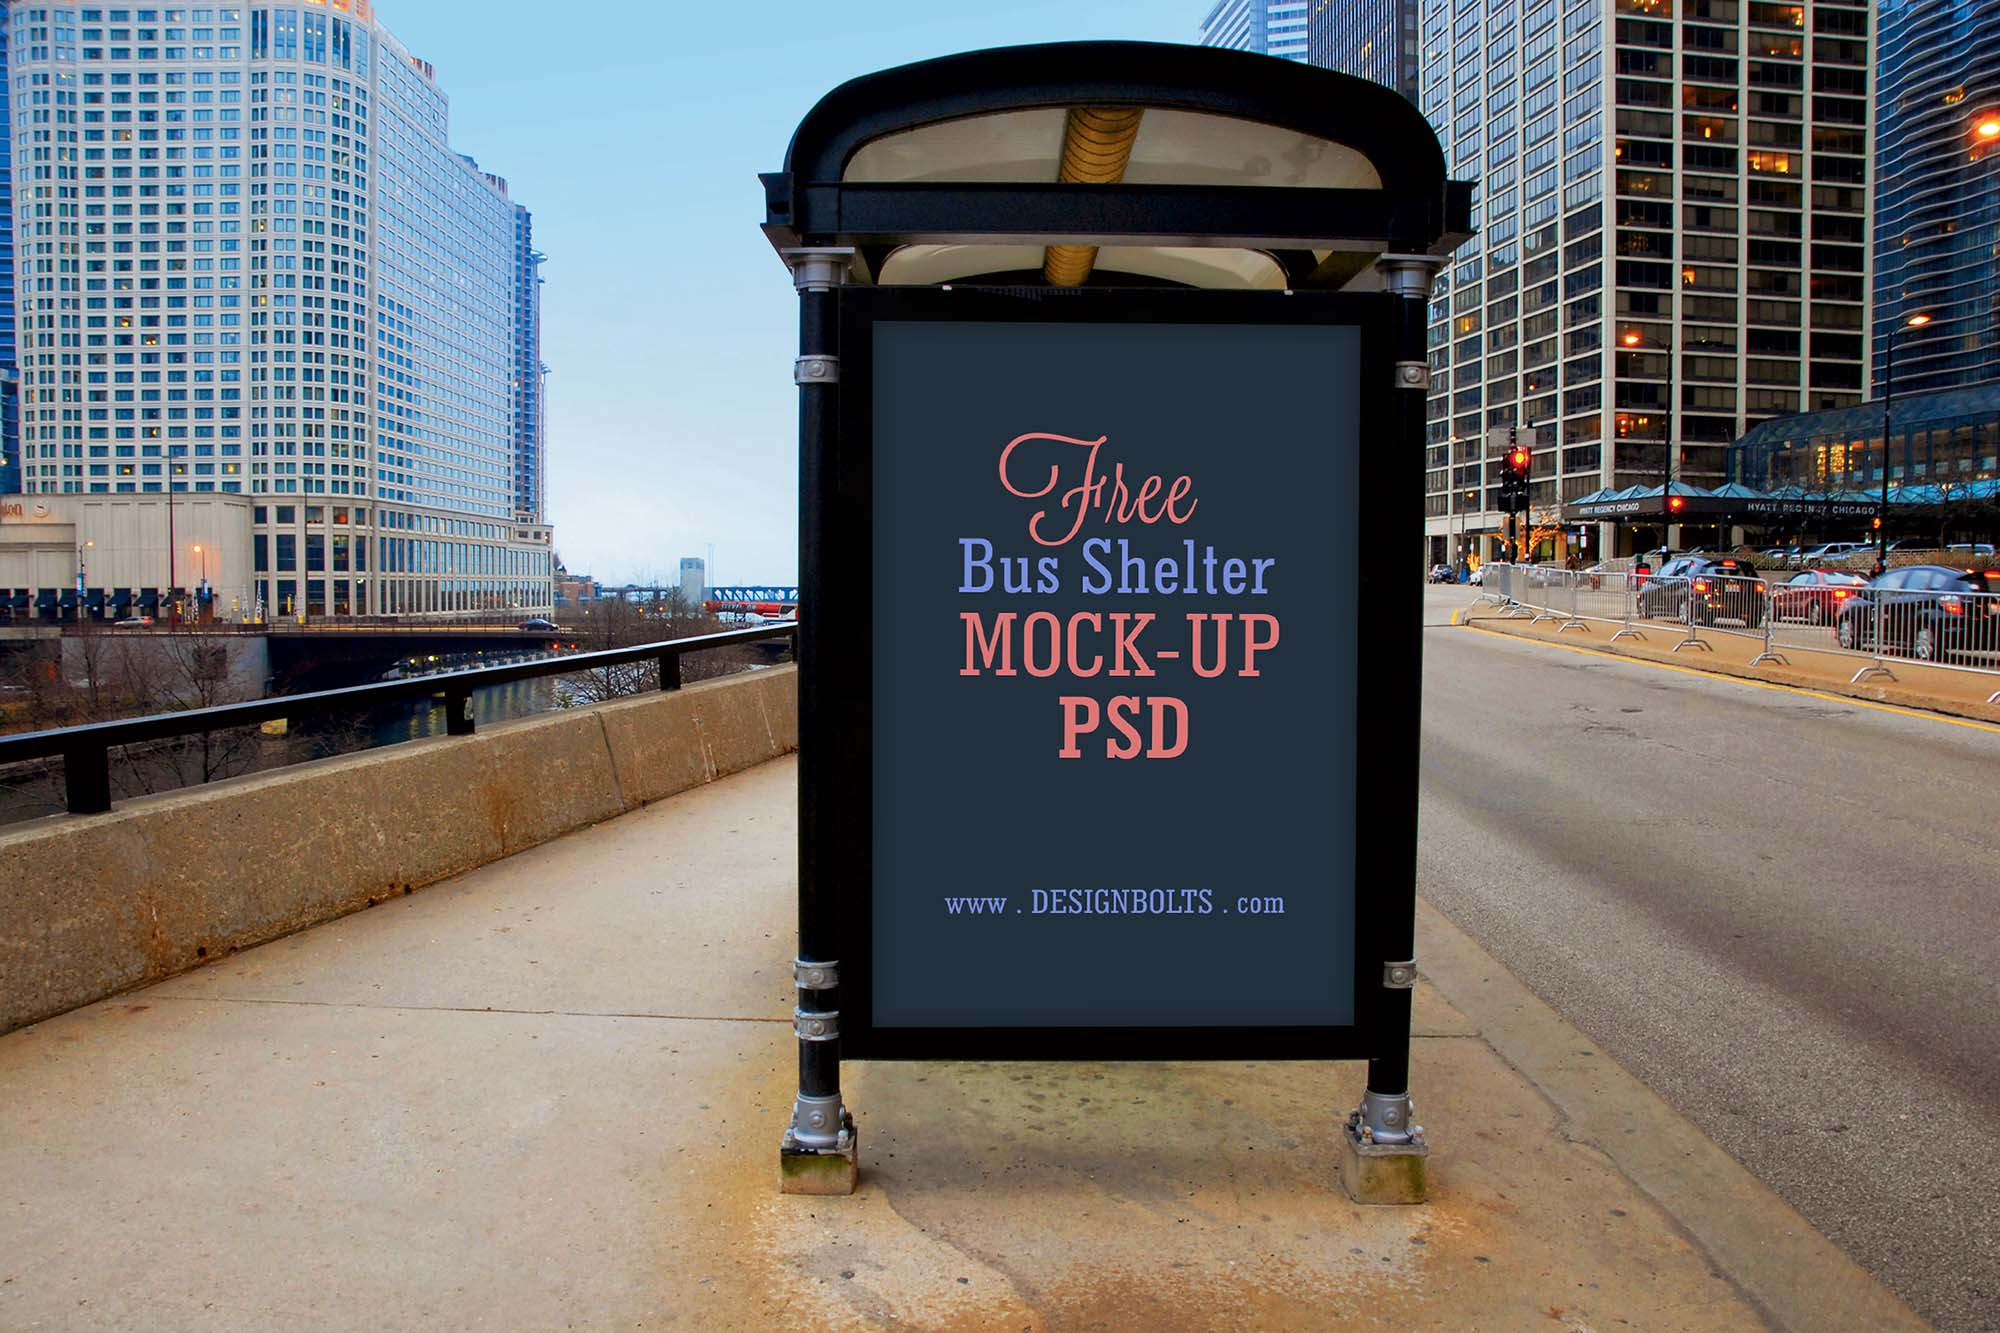 Bus Shelter Advertising Mockup 2